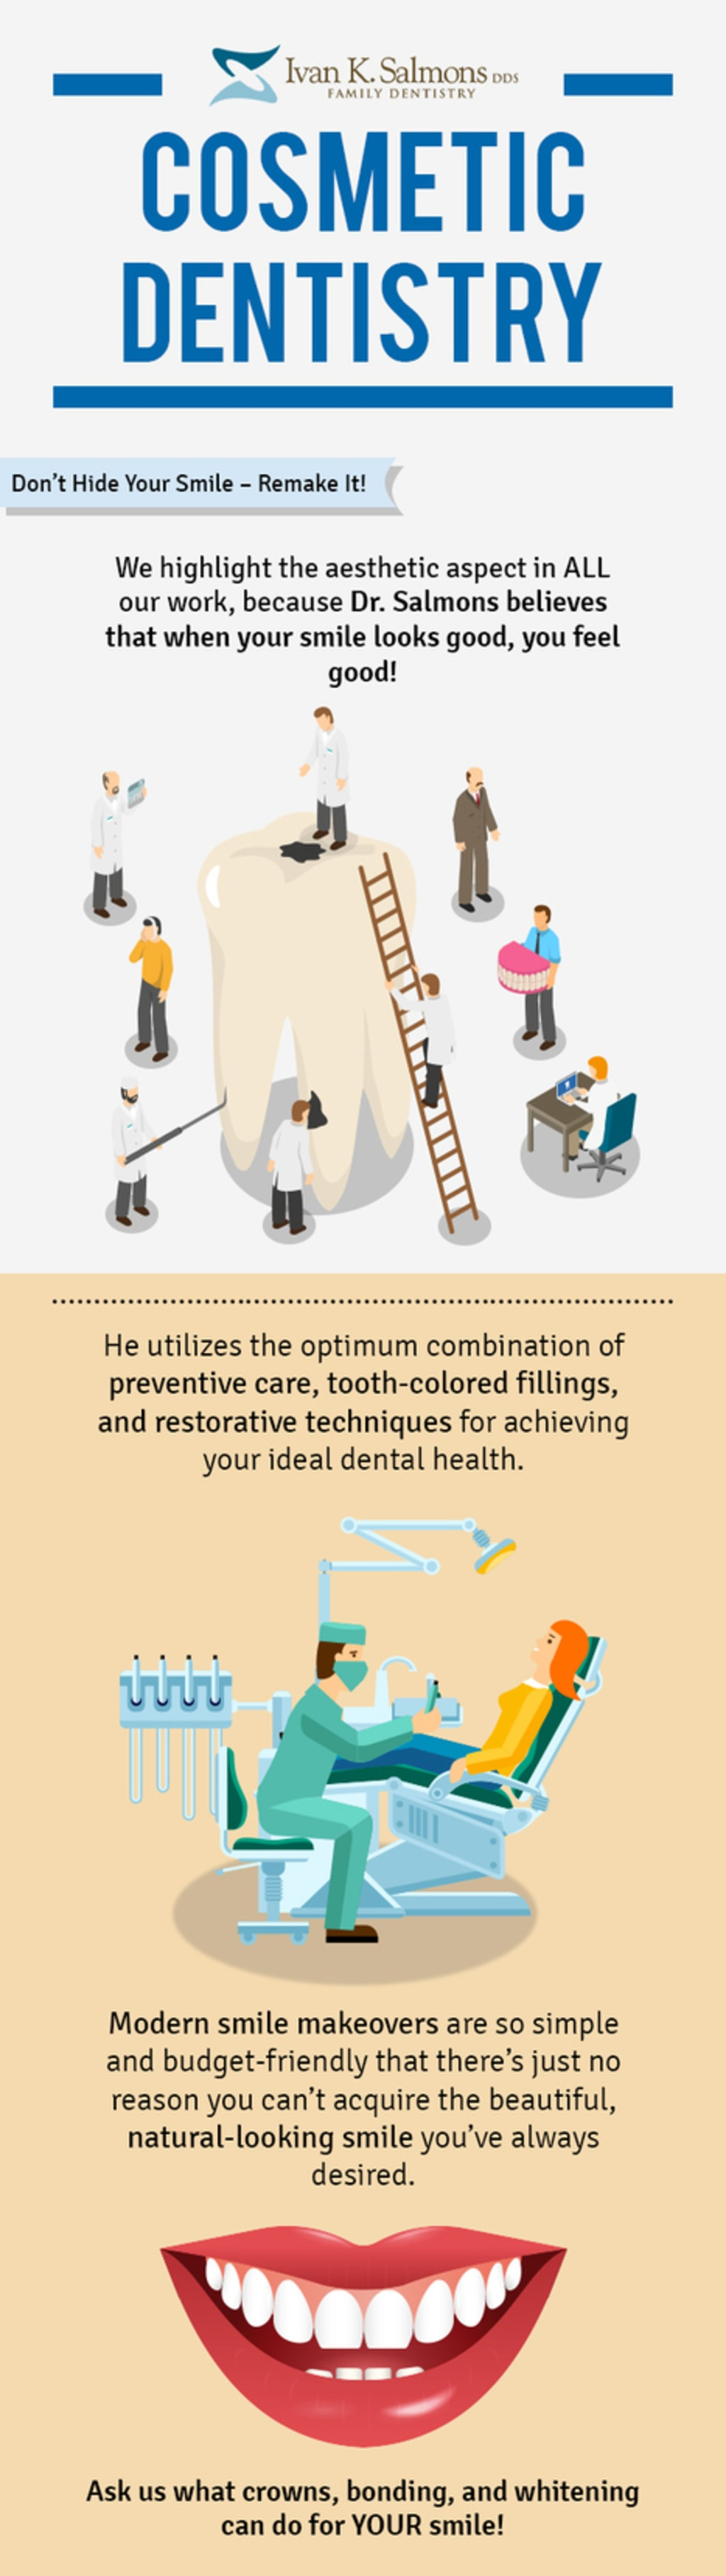 Dr. Ivan K. Salmons, DDS – Your Trusted Cosmetic Dentistry S... via Ivan K. Salmons DDS